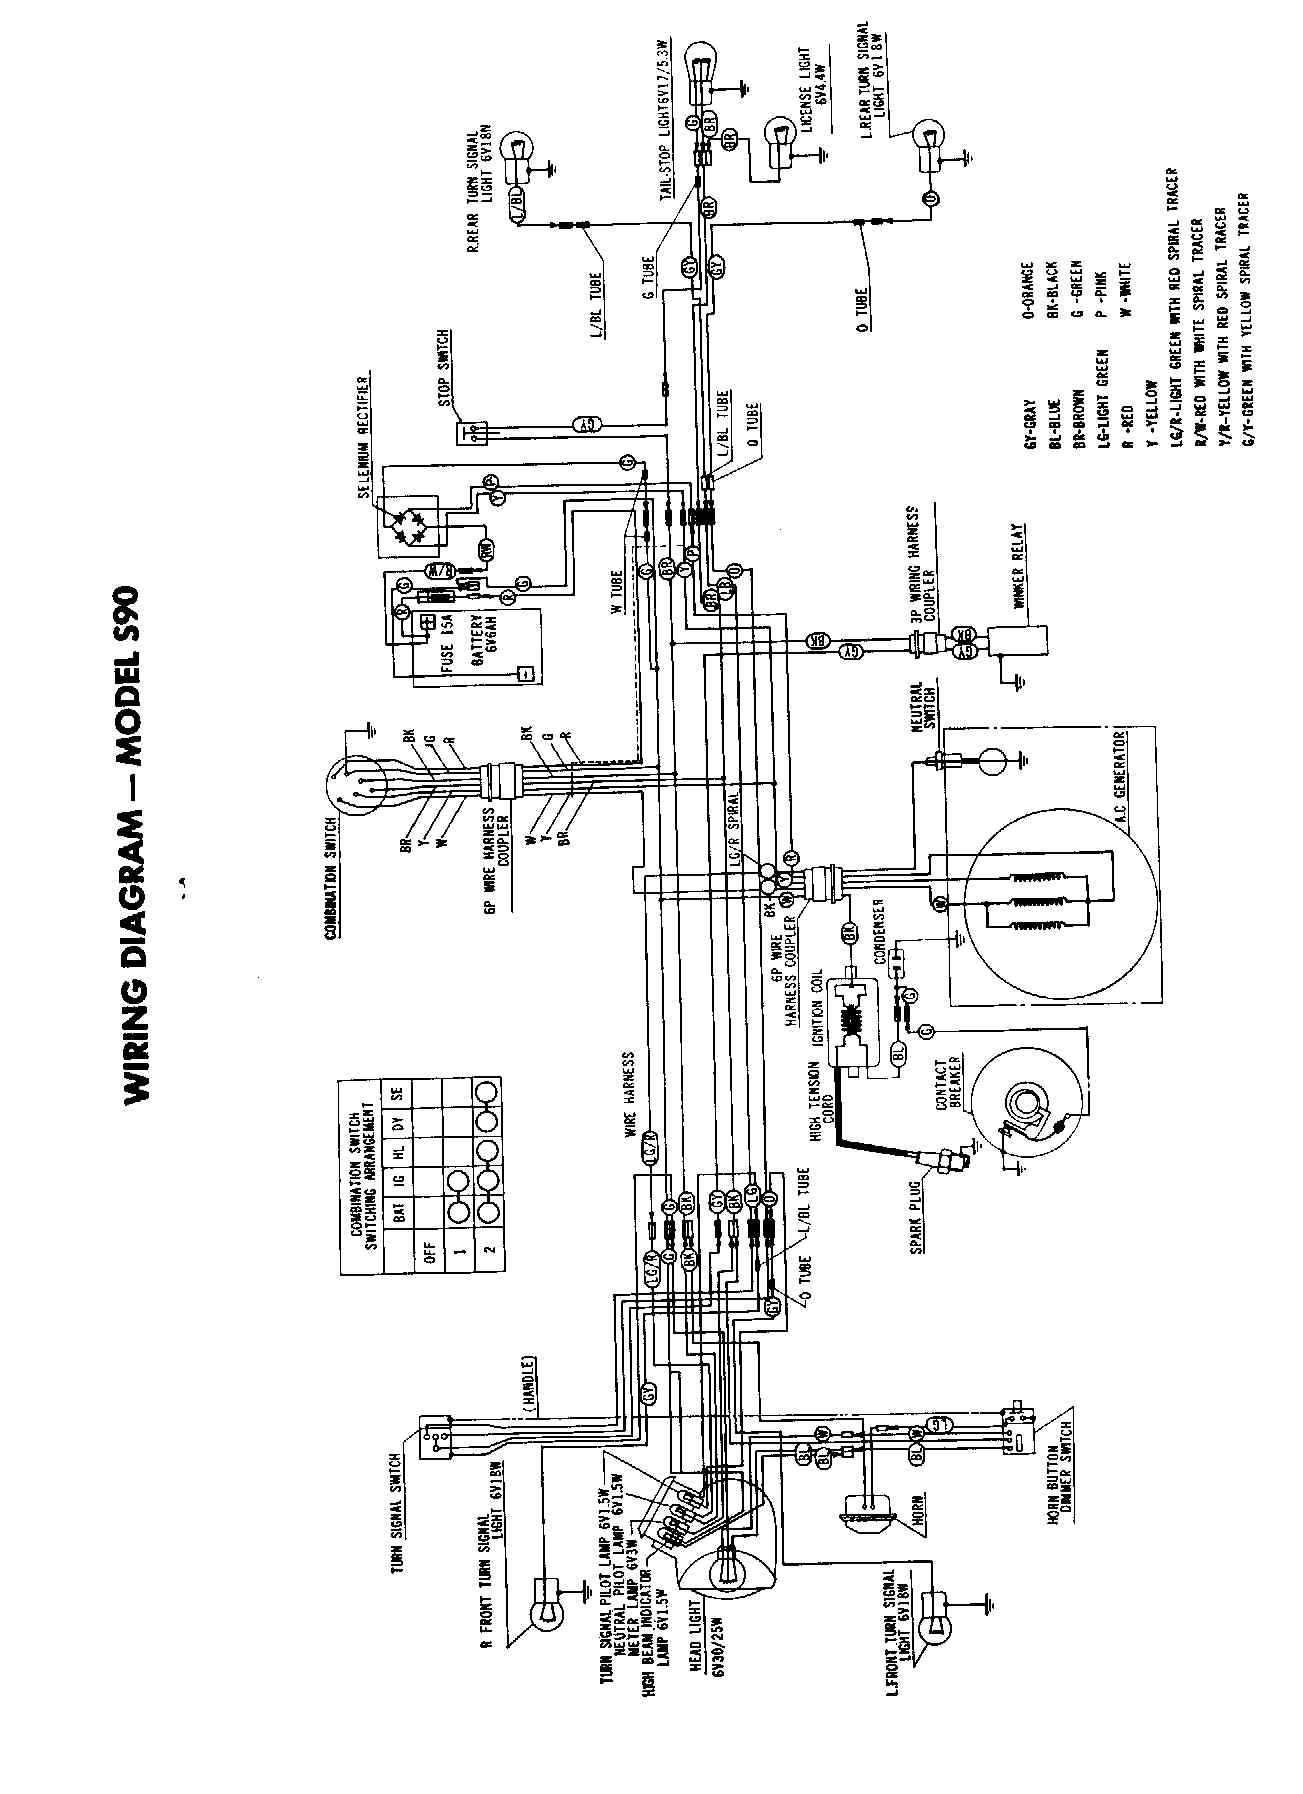 1980 honda xr500 wiring diagram